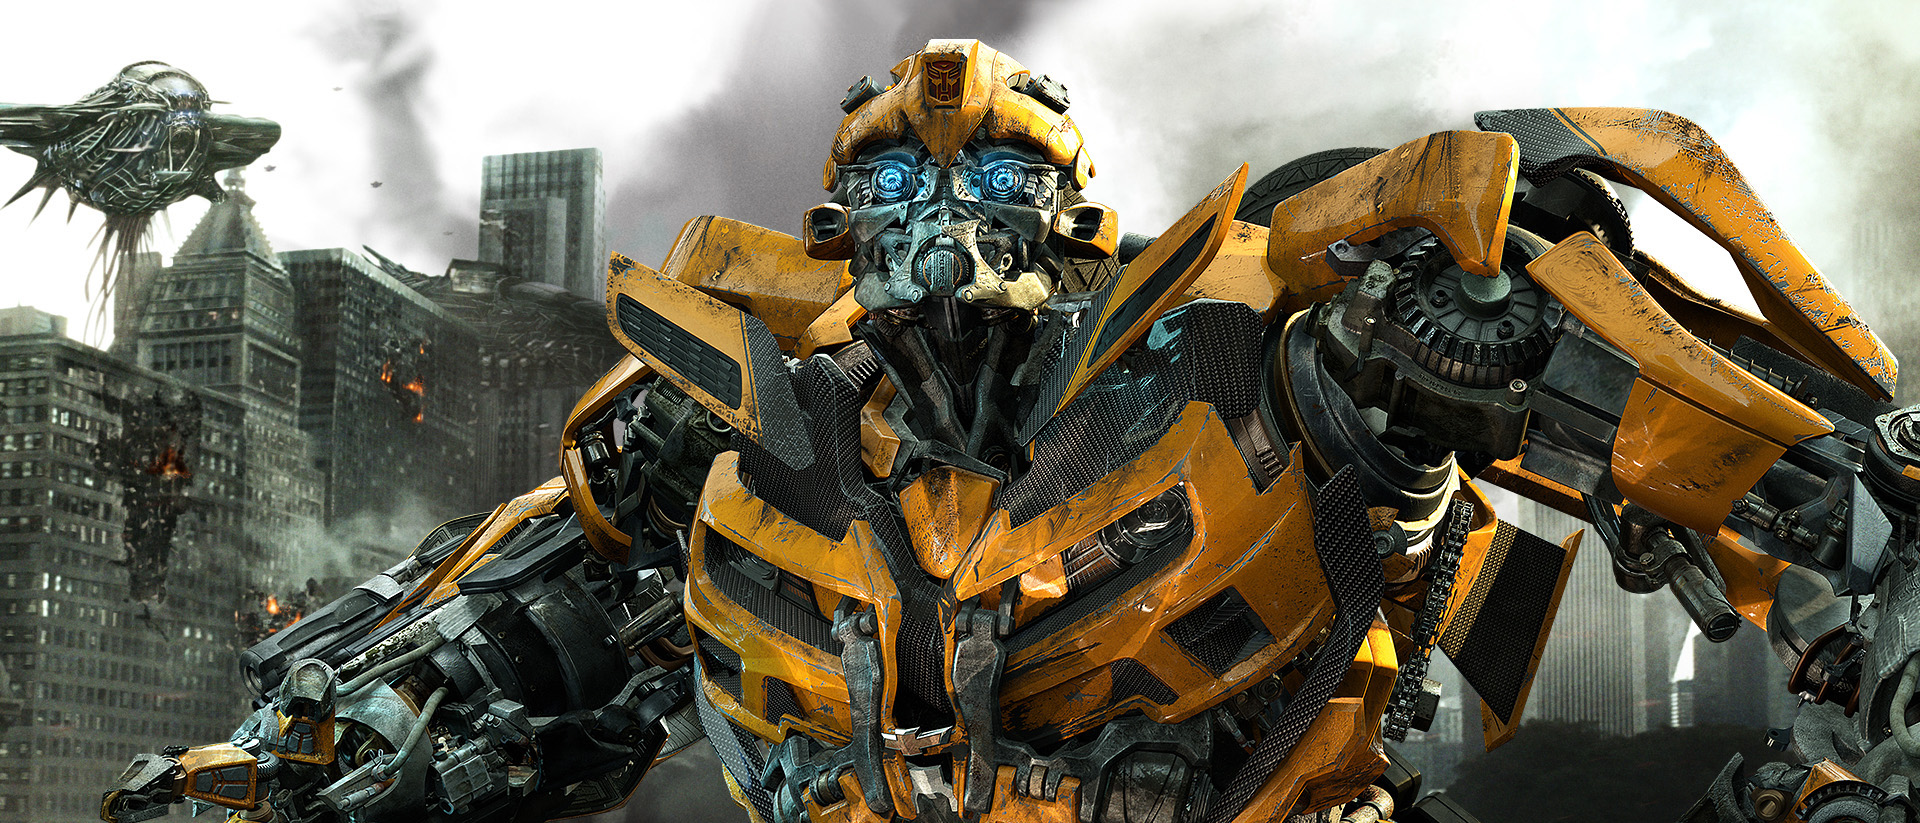 Transformers bumblebee spin off will be akin to the iron giant - Images of bumblebee from transformers ...